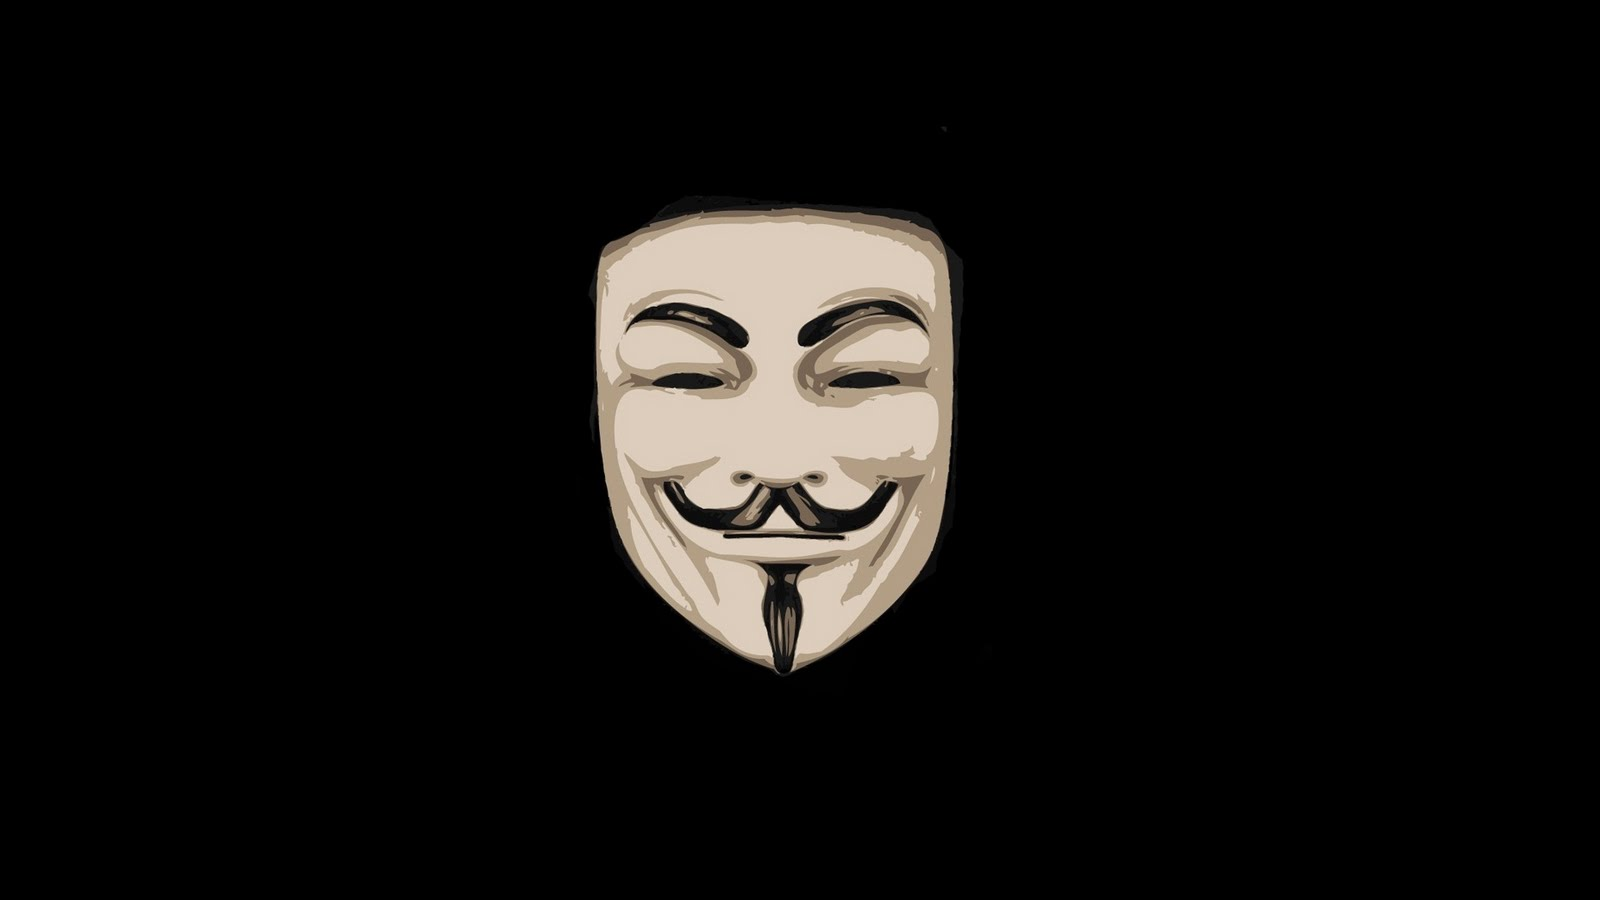 Today's mask is the 'Guy Fawkes' mask. Its a pretty loaded mask, but I'll do my best to drop some knowledge concisely.